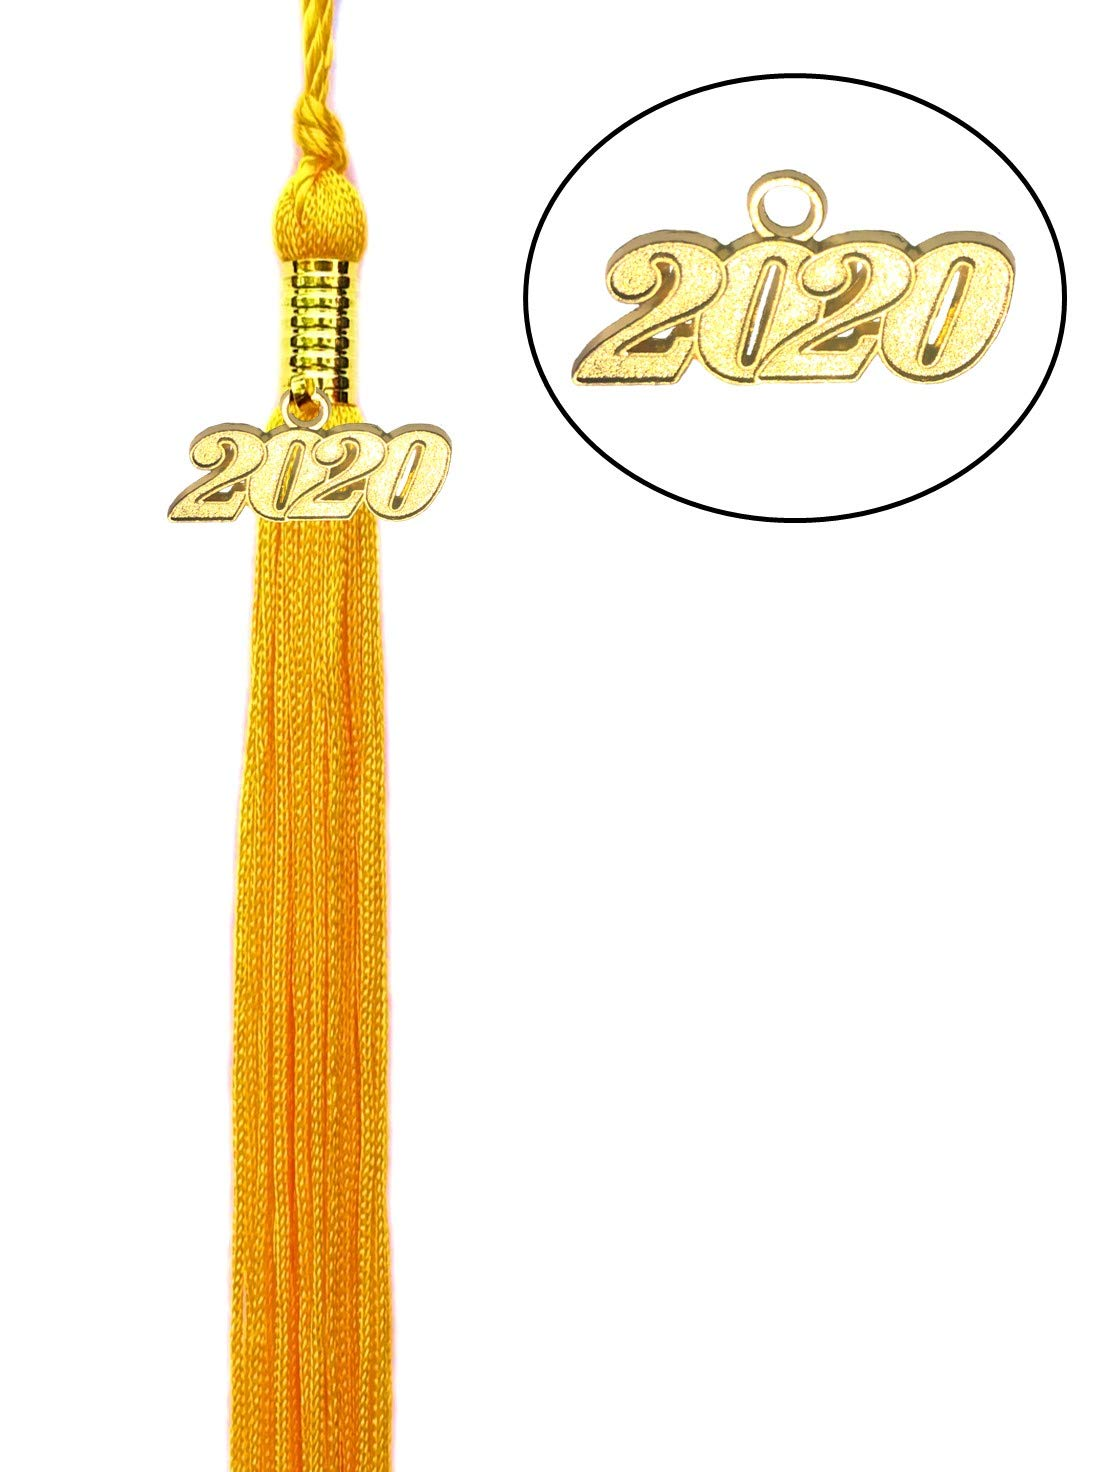 Quality Grad Red Graduation Tassel with 2020 Gold Charm for Graduation Cap or Souvenir